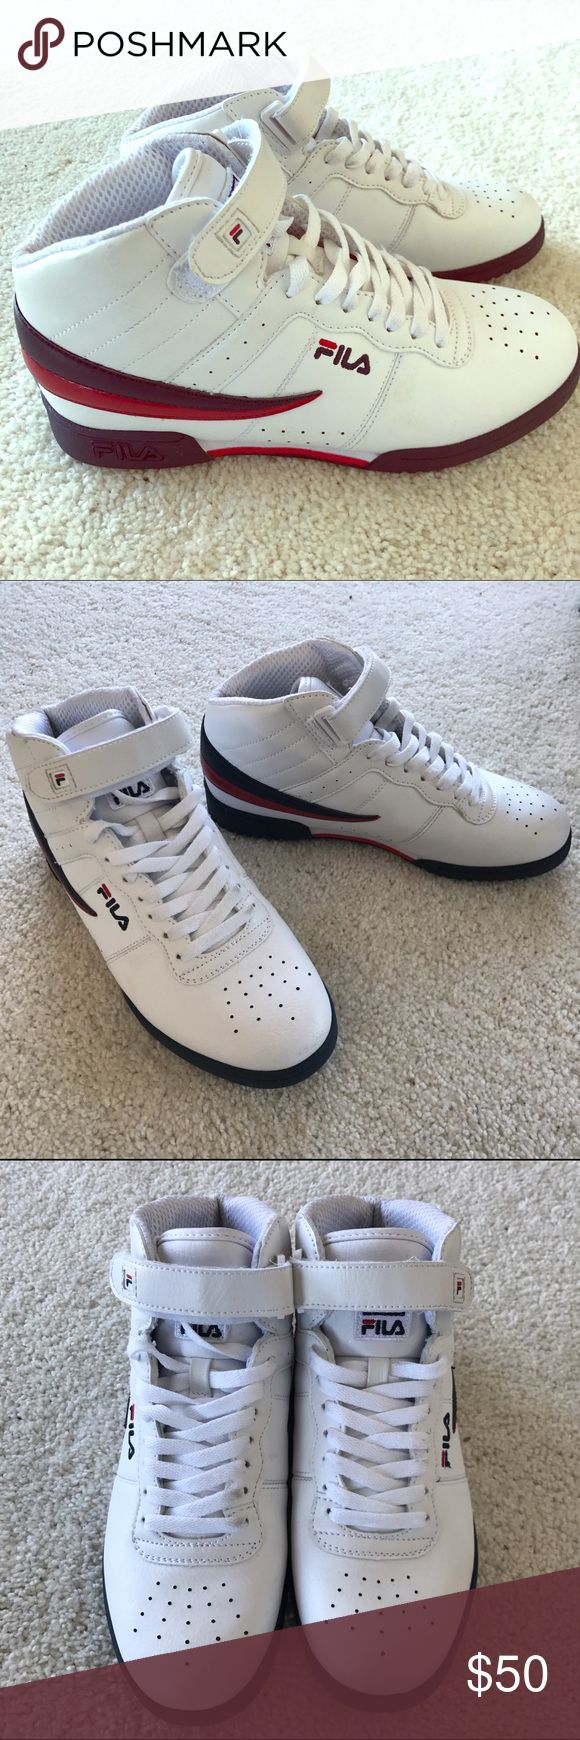 FILA F-13 mid sneakers in white, red & blue Original and classic Fila sneakers, only worn once aka as good as new. UK size 6, translates to US size 8, super comfy and add a gorgeous look to any outfit. Fila Shoes Sneakers